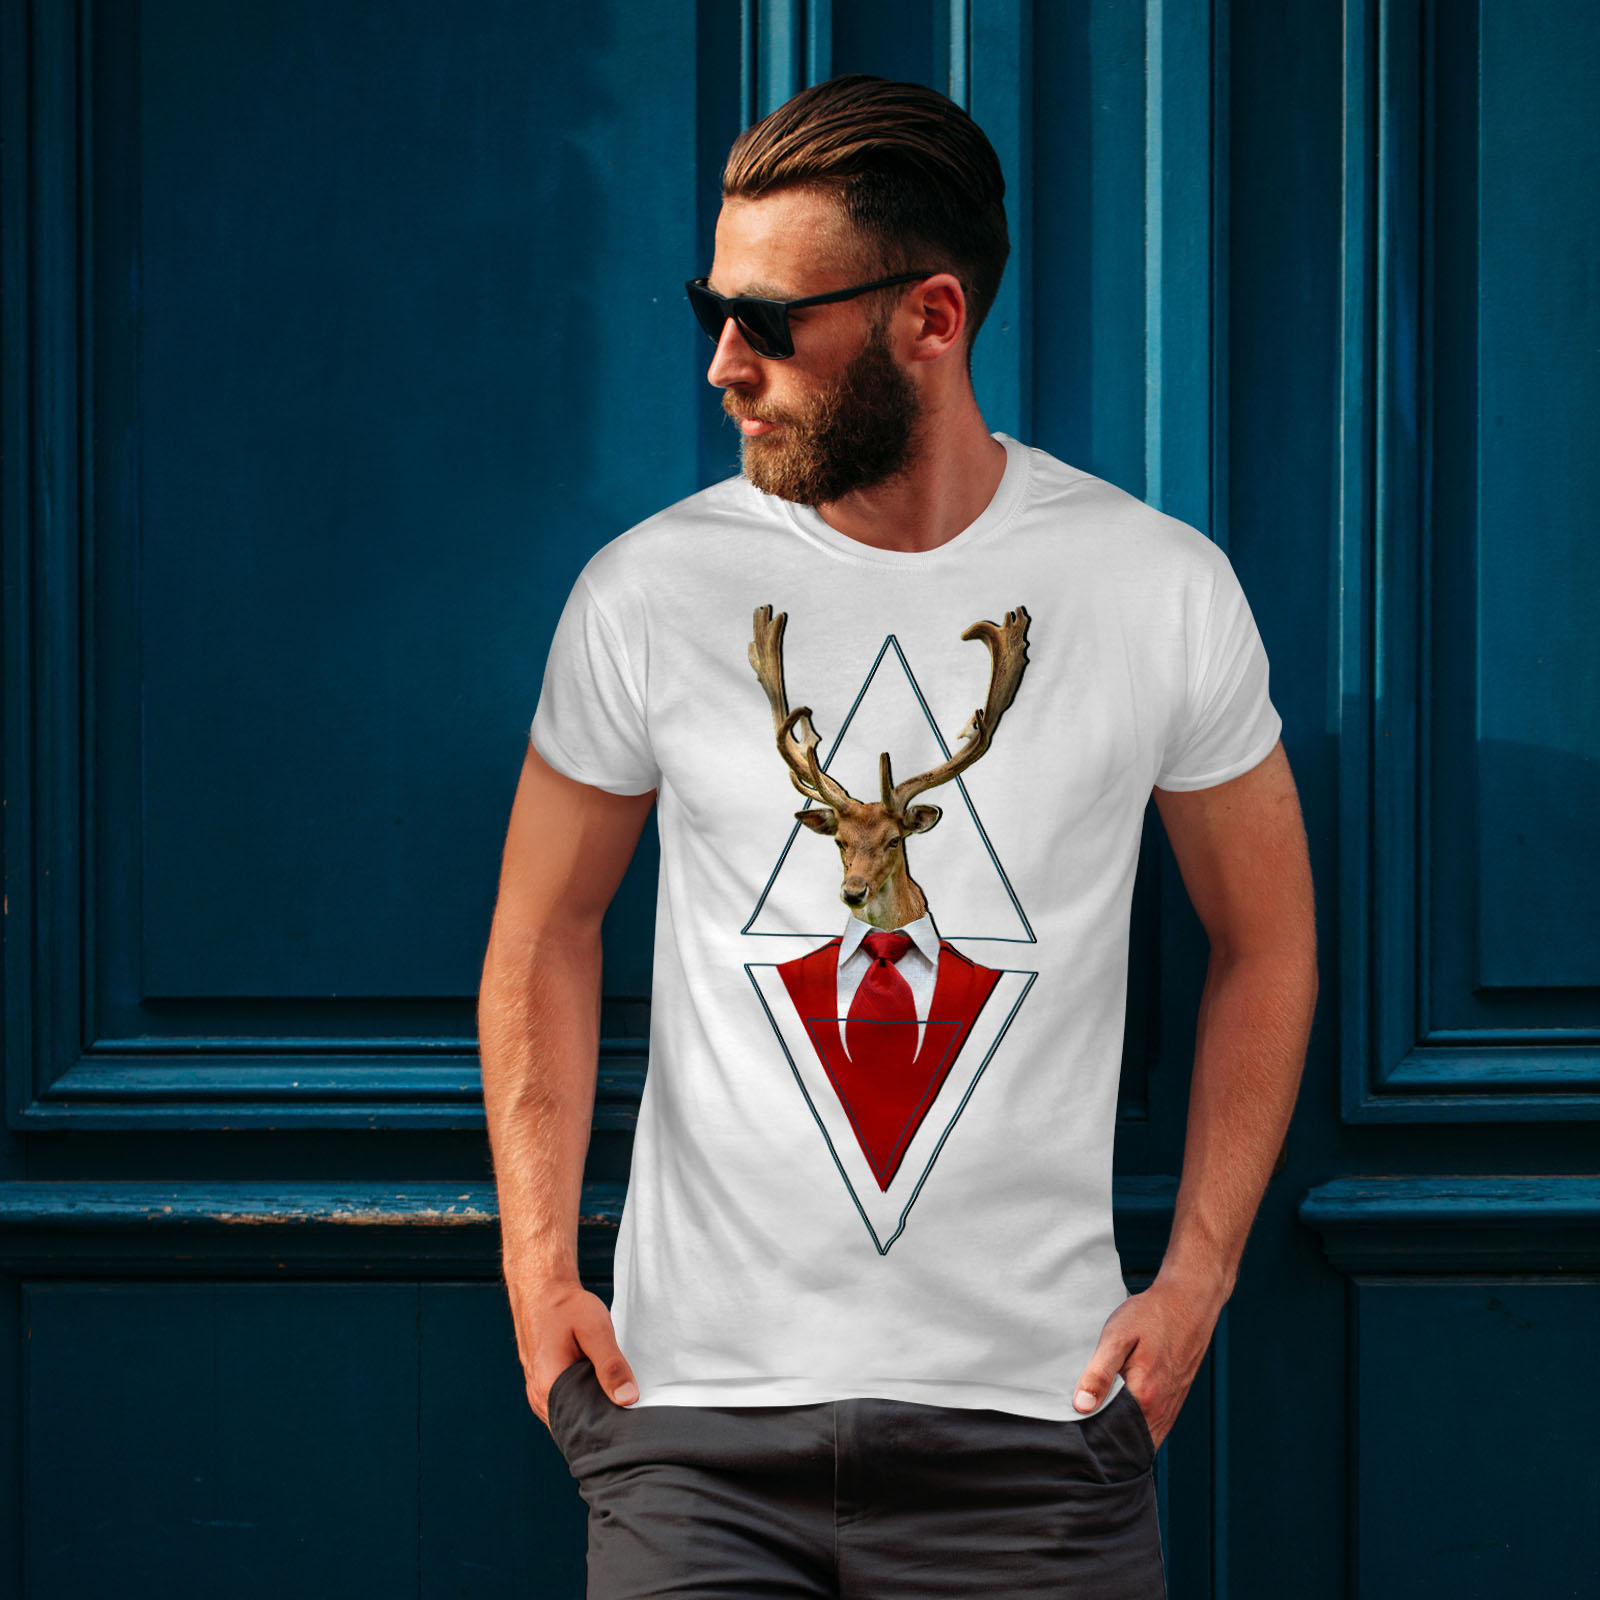 Wellcoda-Abstract-Animal-T-shirt-Homme-chic-design-graphique-imprime-Tee miniature 10